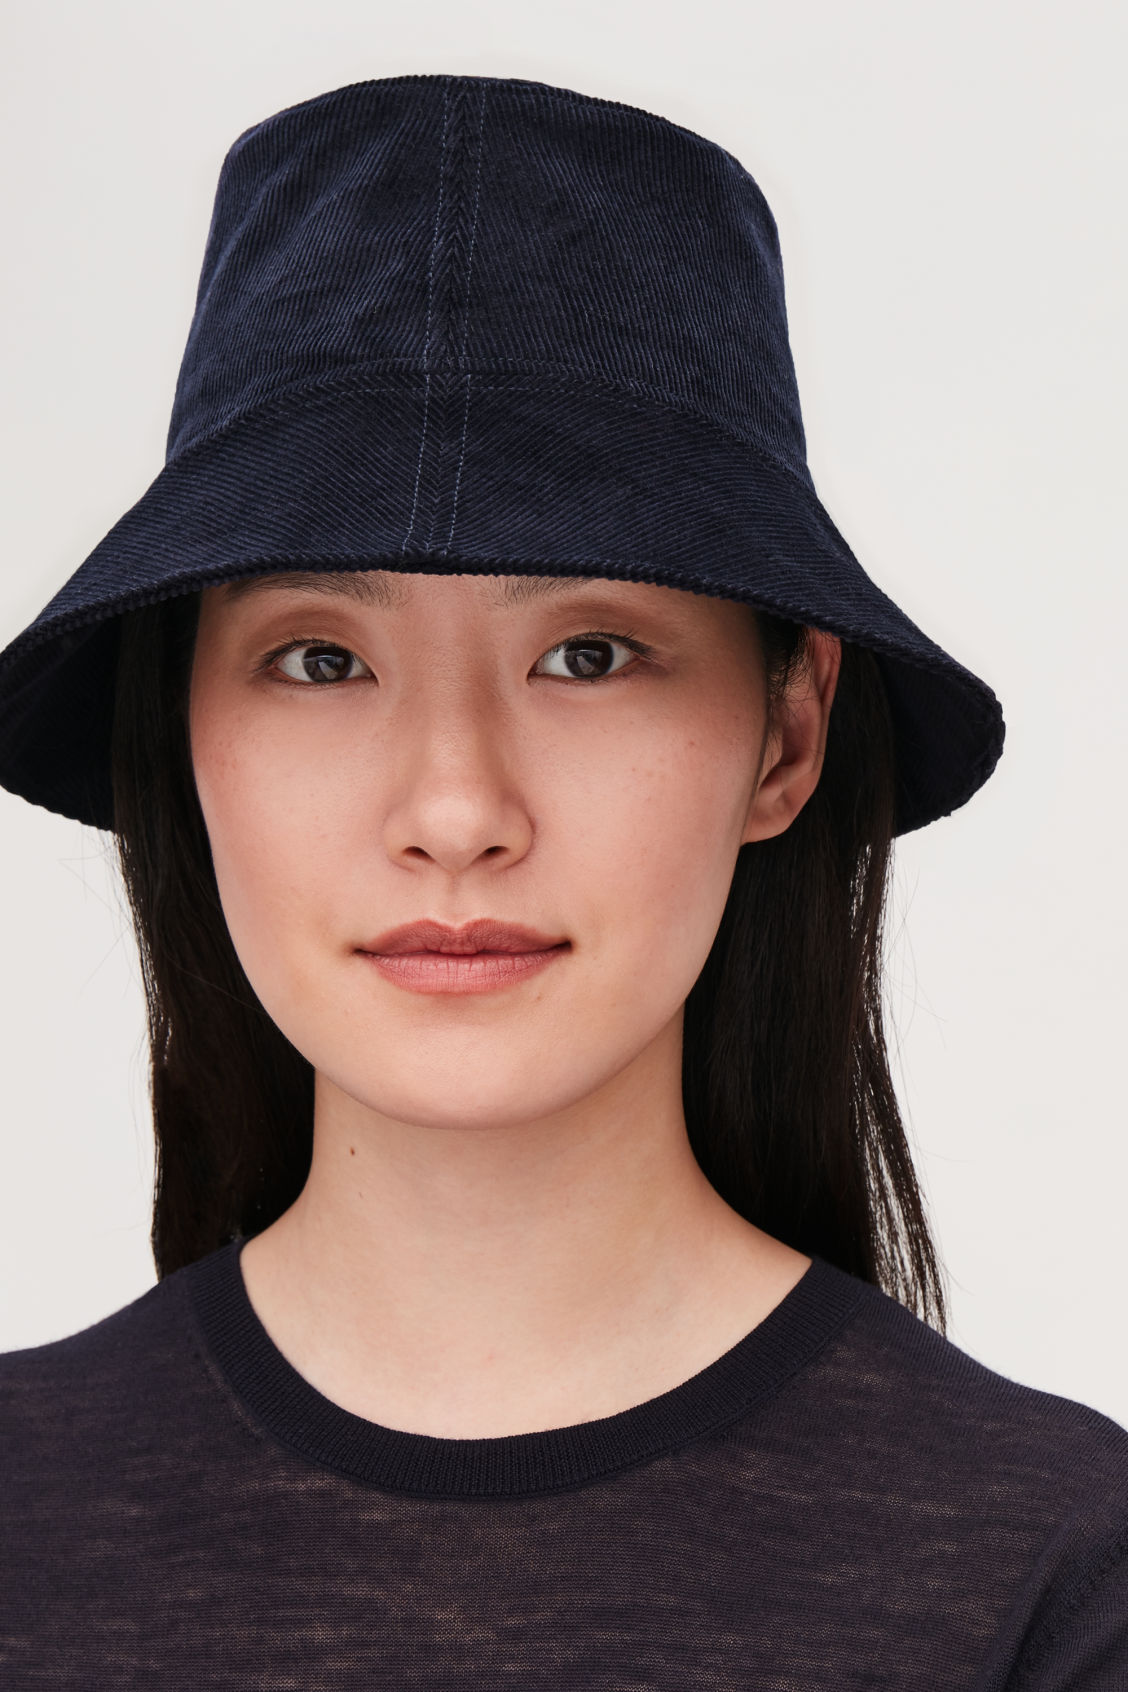 CORDUROY BUCKET HAT - Midnight blue - Hats Scarves and Gloves ... eef6e5b8c26d